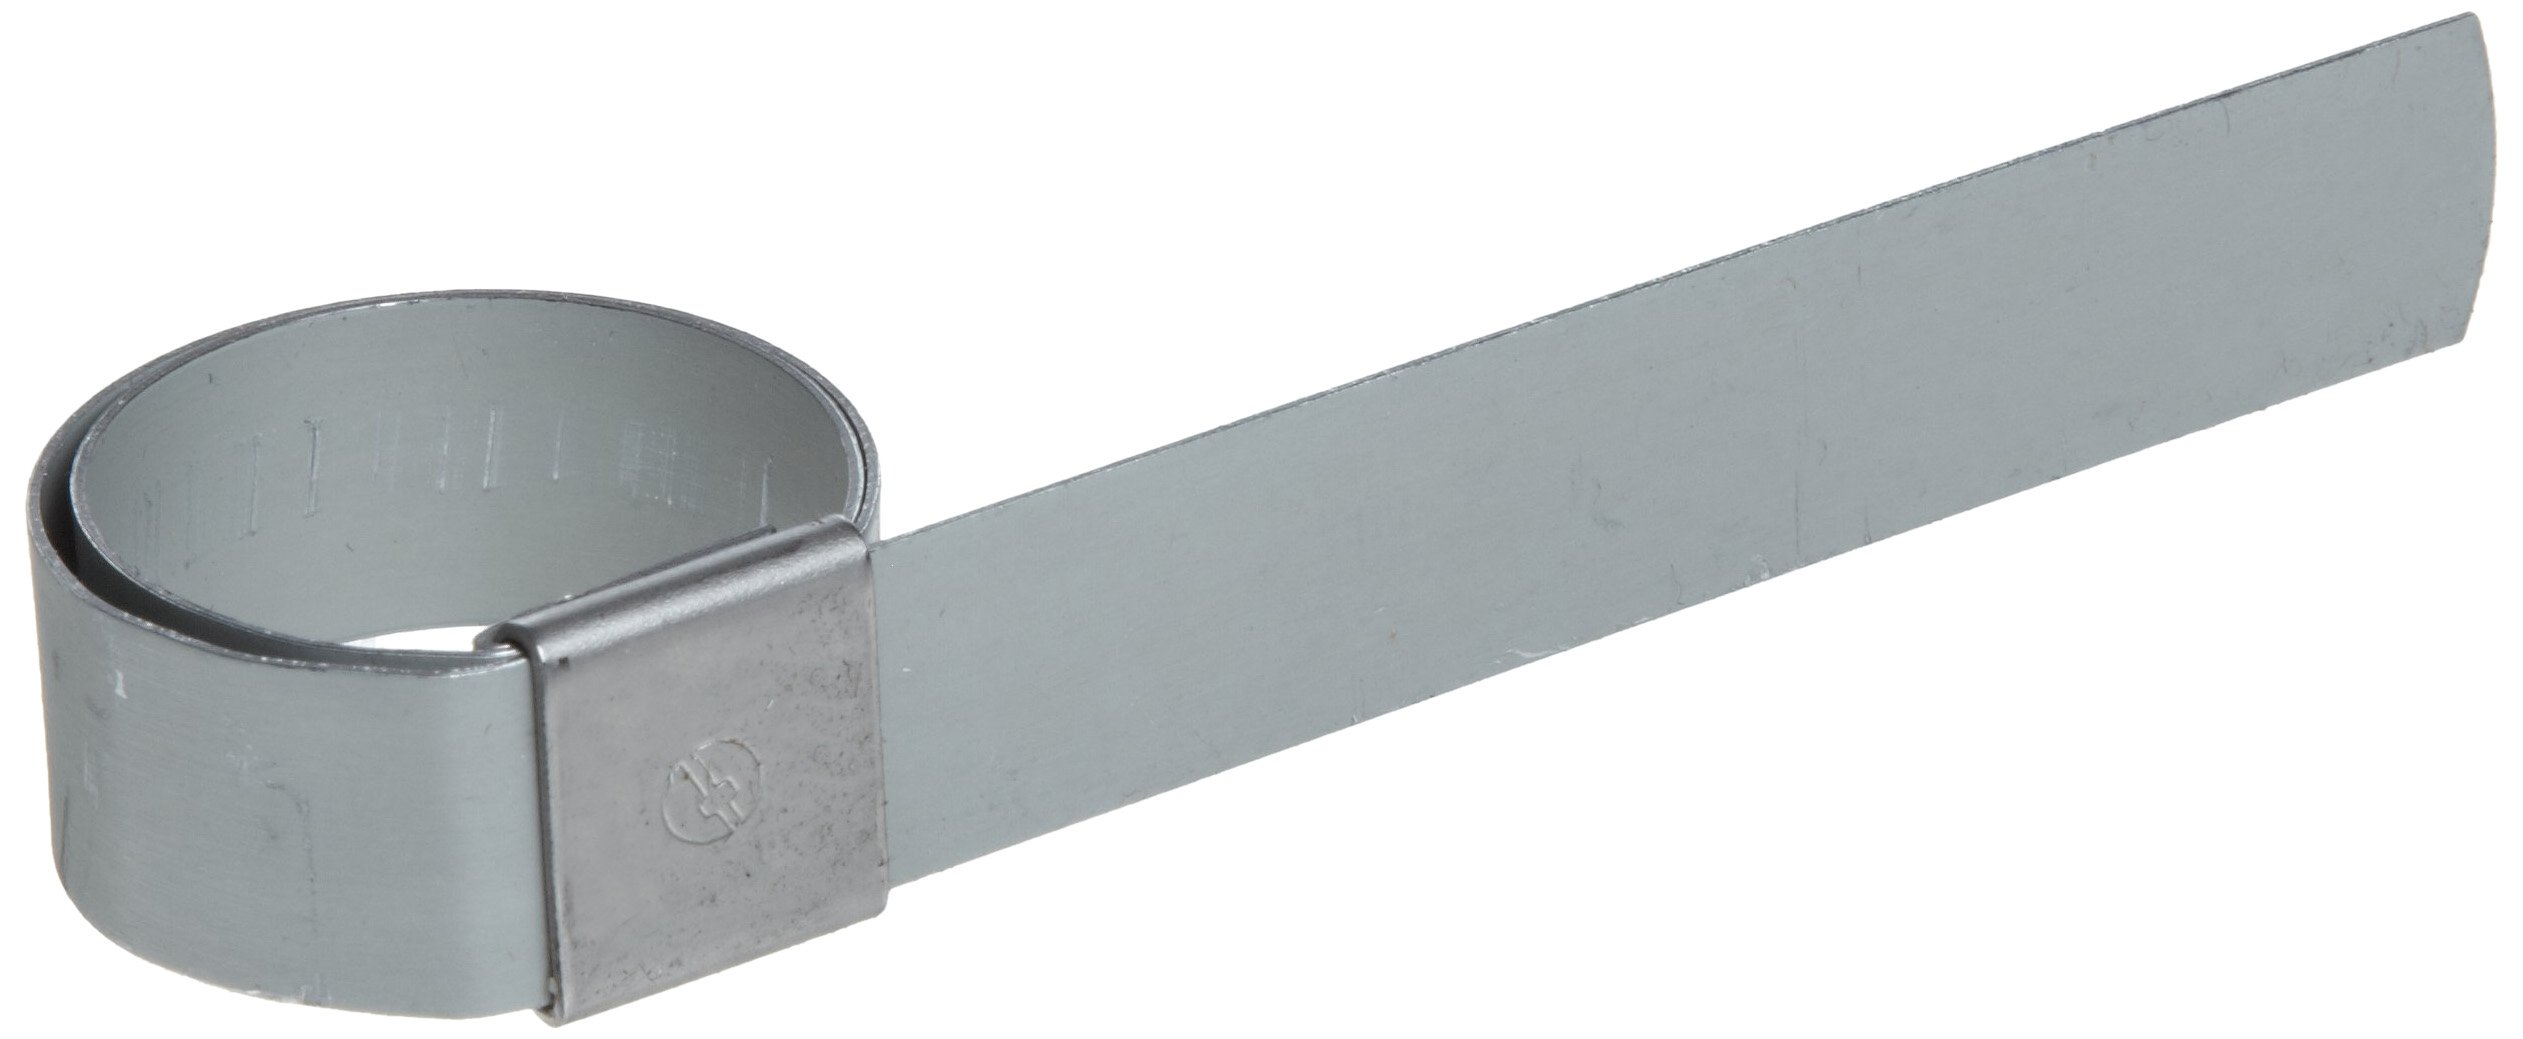 BAND-IT CP0599 5/8'' Wide x 0.025'' Thick 1-1/4'' Diameter, Galvanized Carbon Steel Center Punch Clamp (100 Per Box)